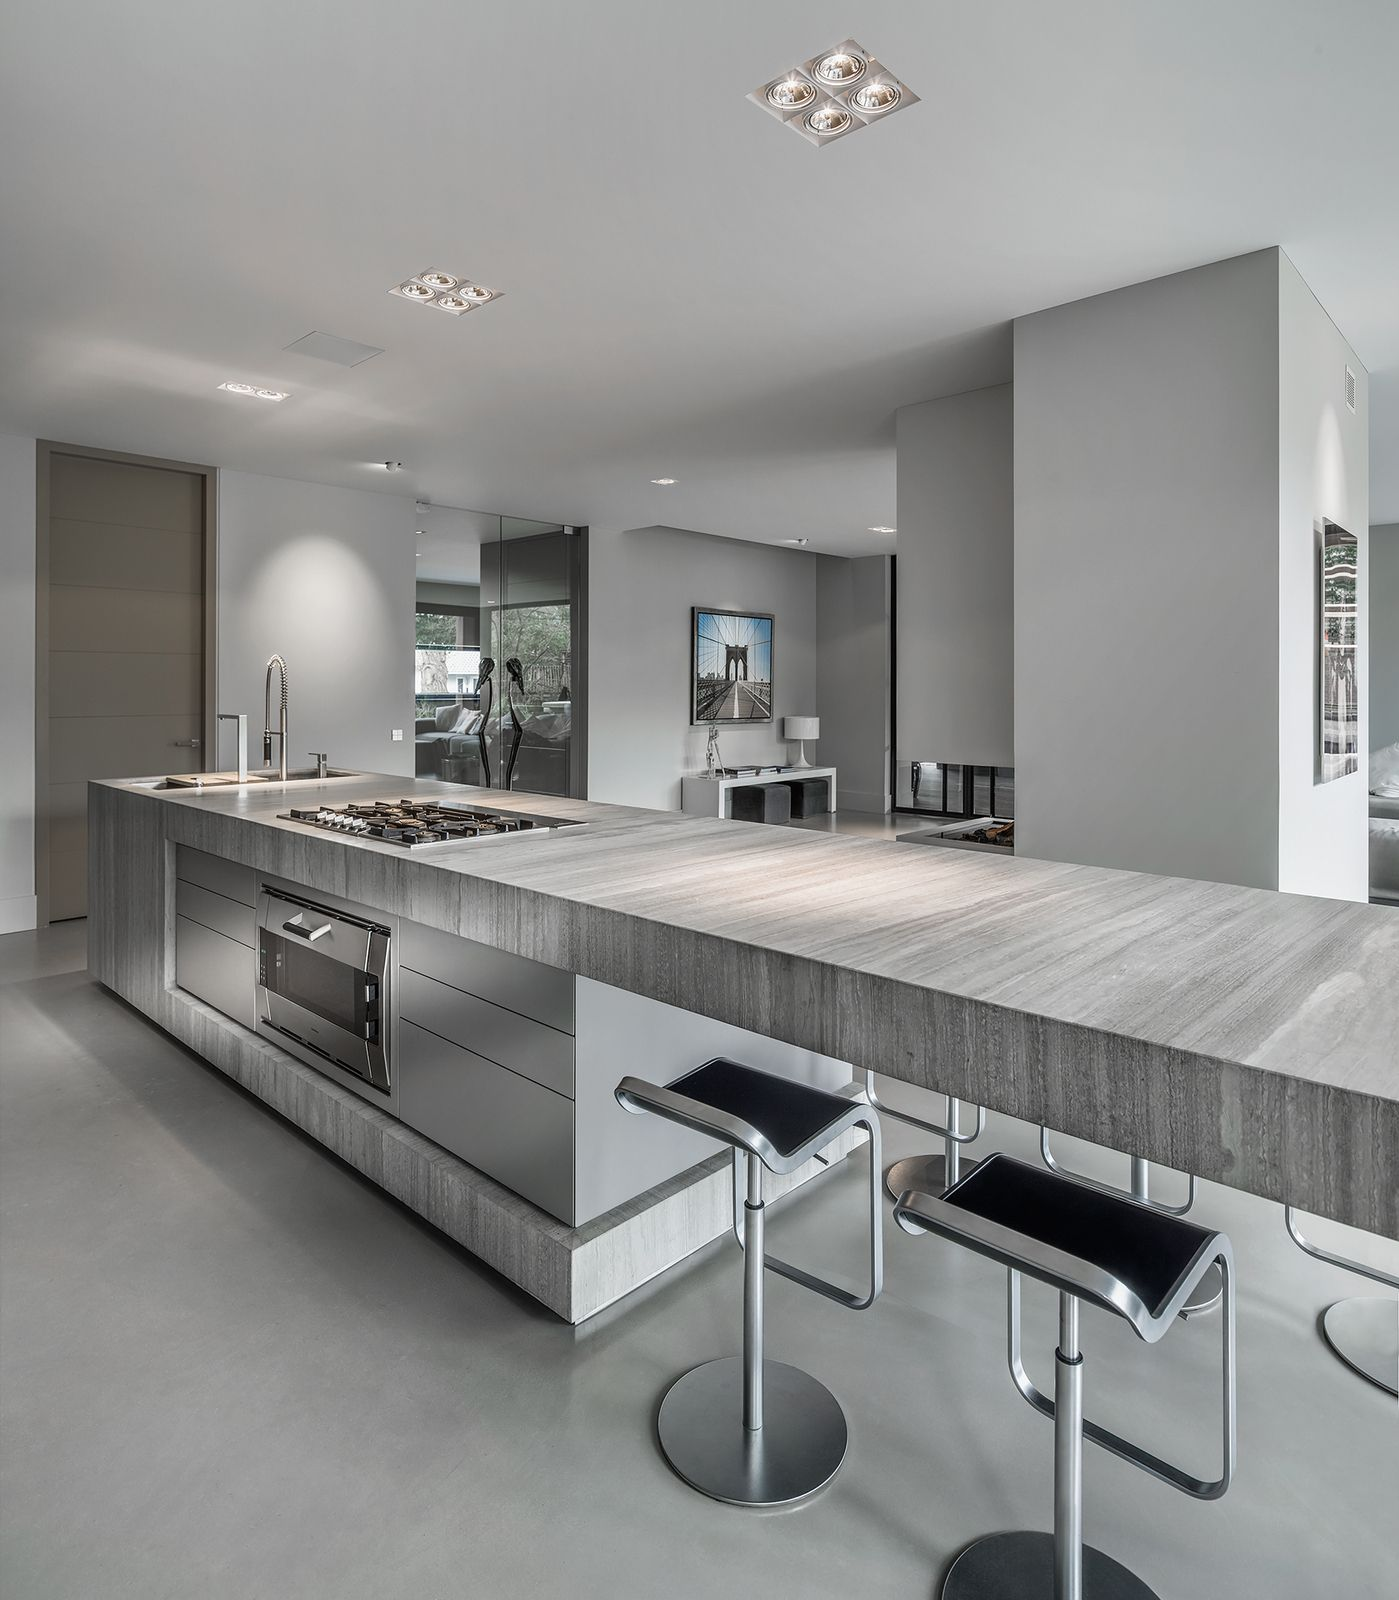 Culimaat High End Kitchens Interiors Italiaanse Keukens En Maatkeukens Blo